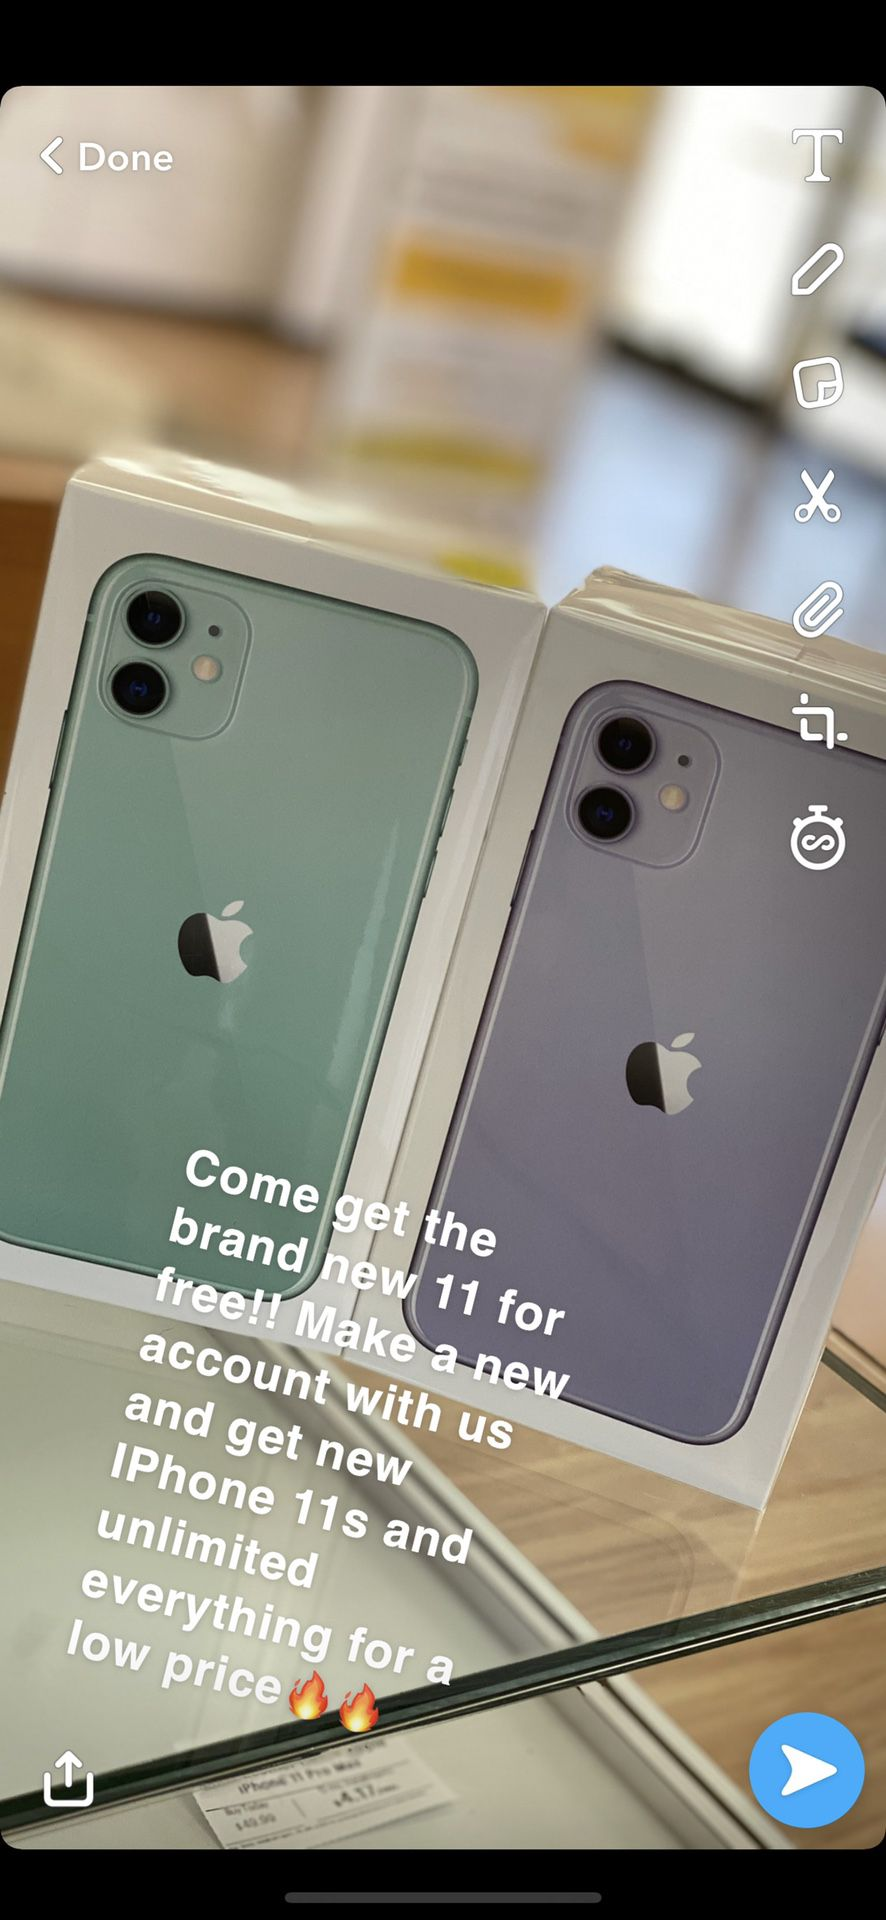 Free IPhone 11s when you open up a new account!!!!